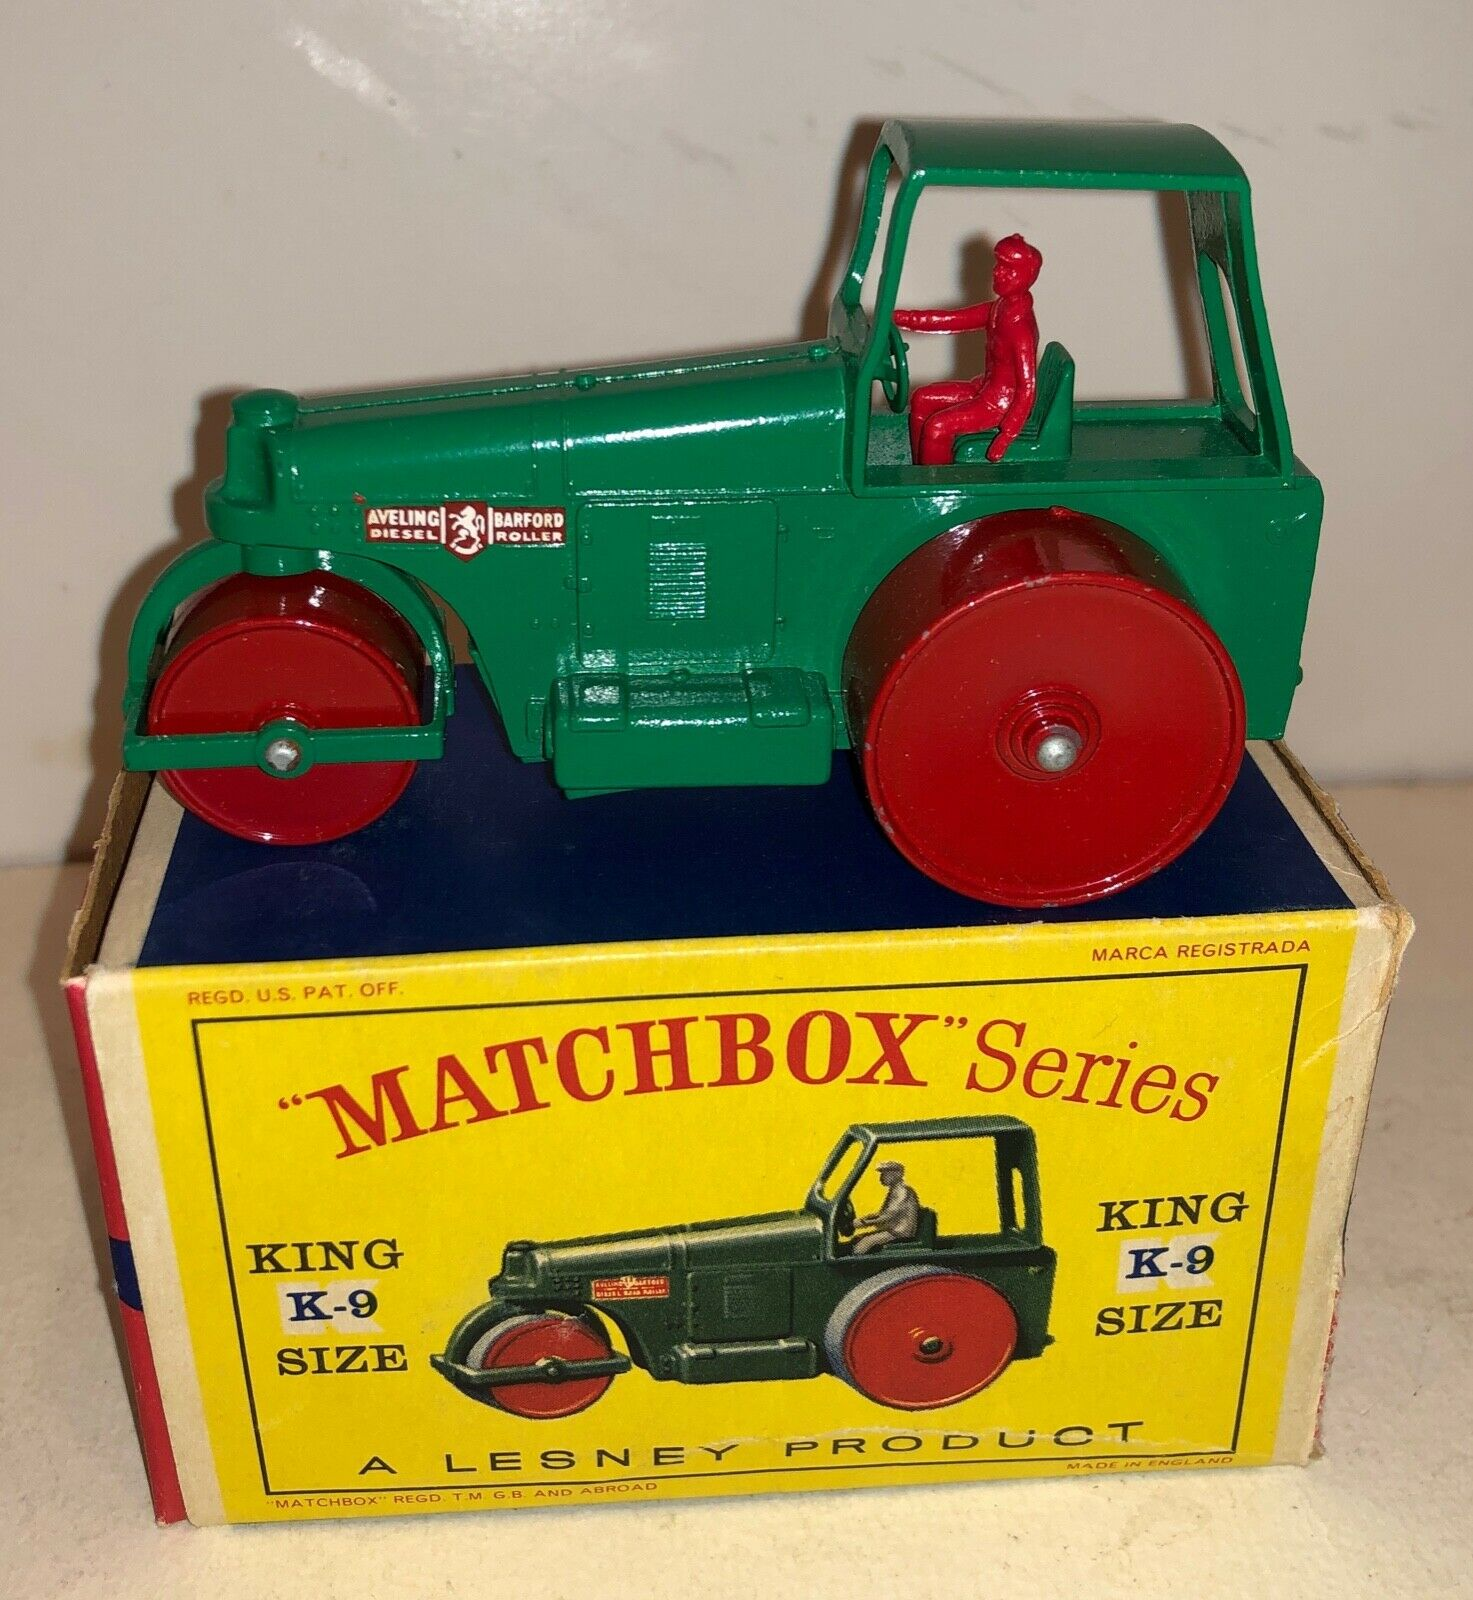 Matchbox King Size K-9 Aveling-Barford Road Roller-Near Mint in Box